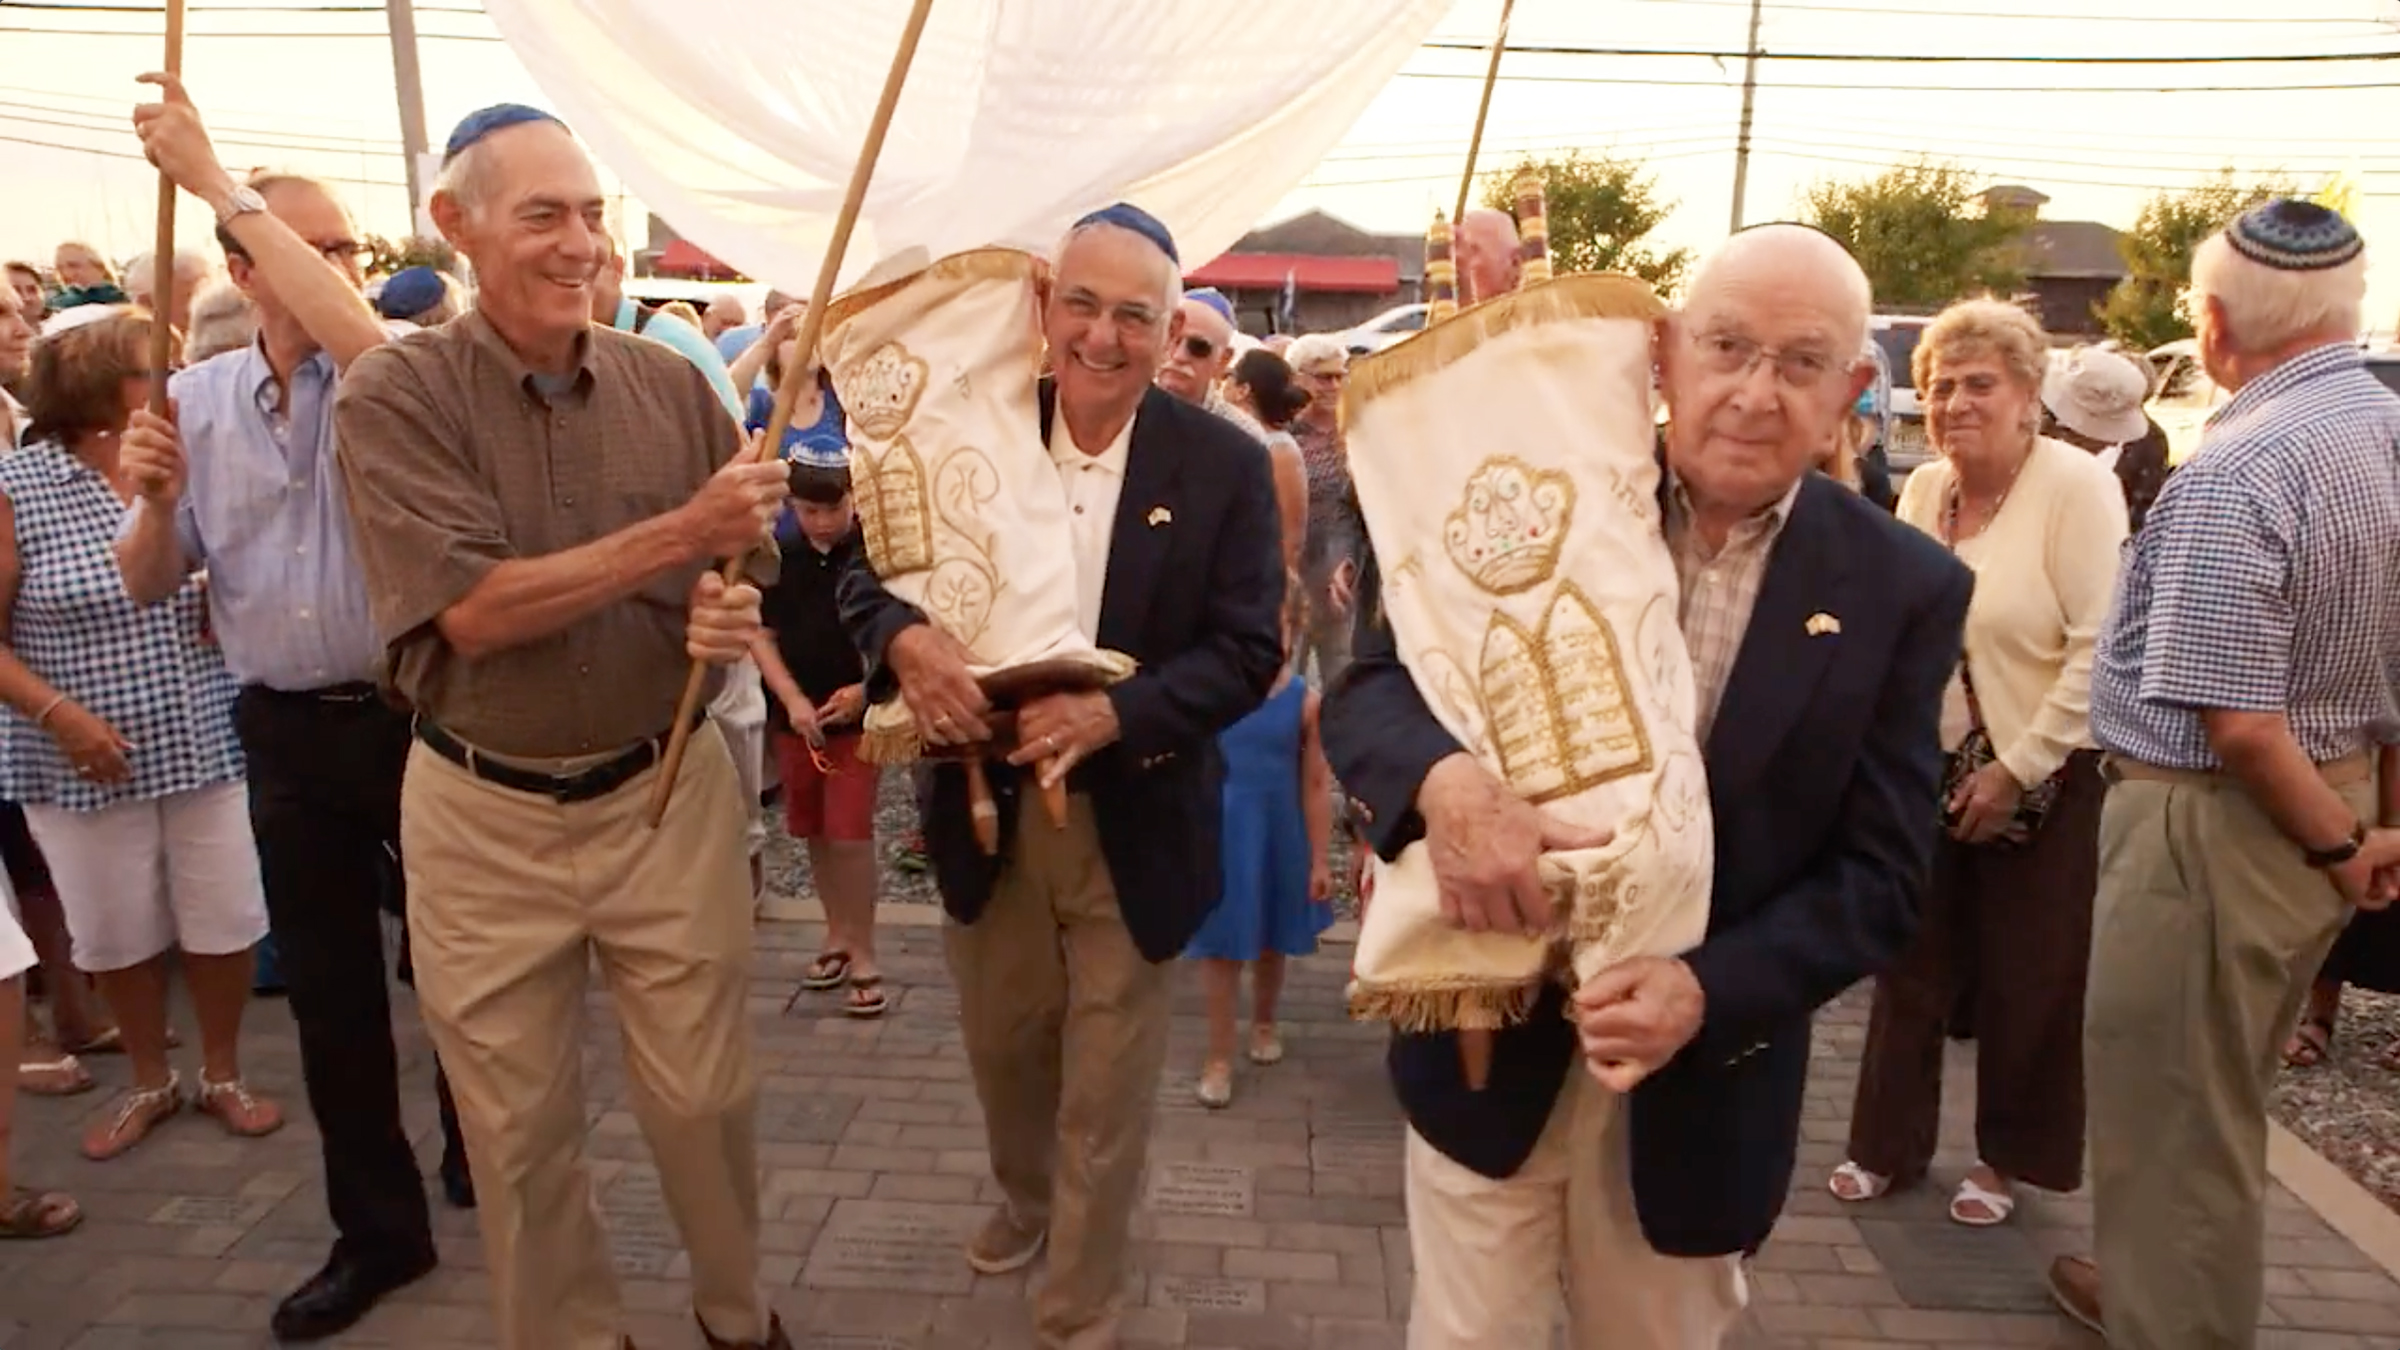 Mickey Radman, right, holds the Torah from his Latrobe, Pa., shul in a still from There Are Jews Here. Photo courtesy 371 Productions.